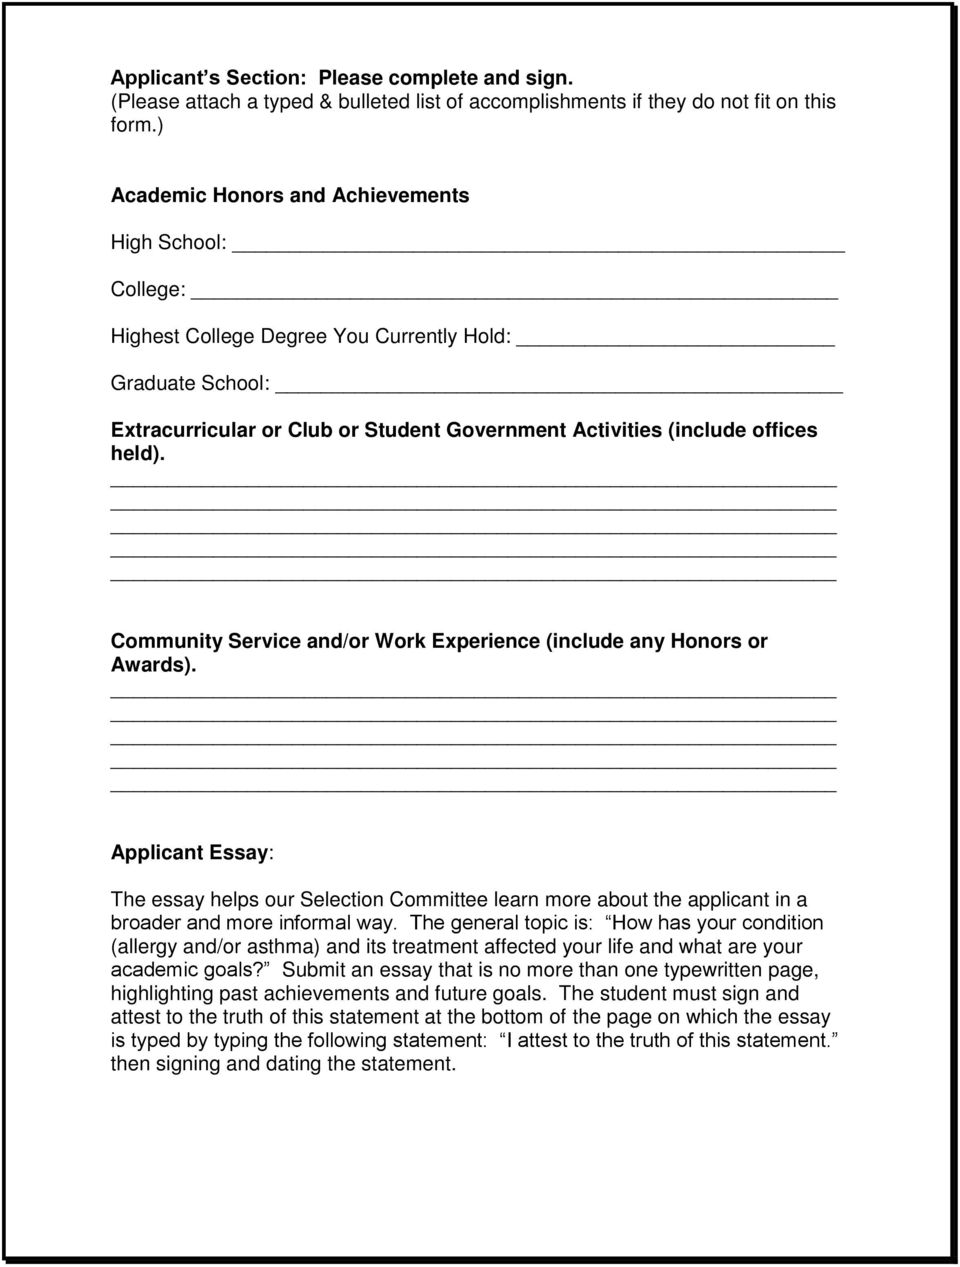 Community Service and/or Work Experience (include any Honors or Awards). Applicant Essay: The essay helps our Selection Committee learn more about the applicant in a broader and more informal way.